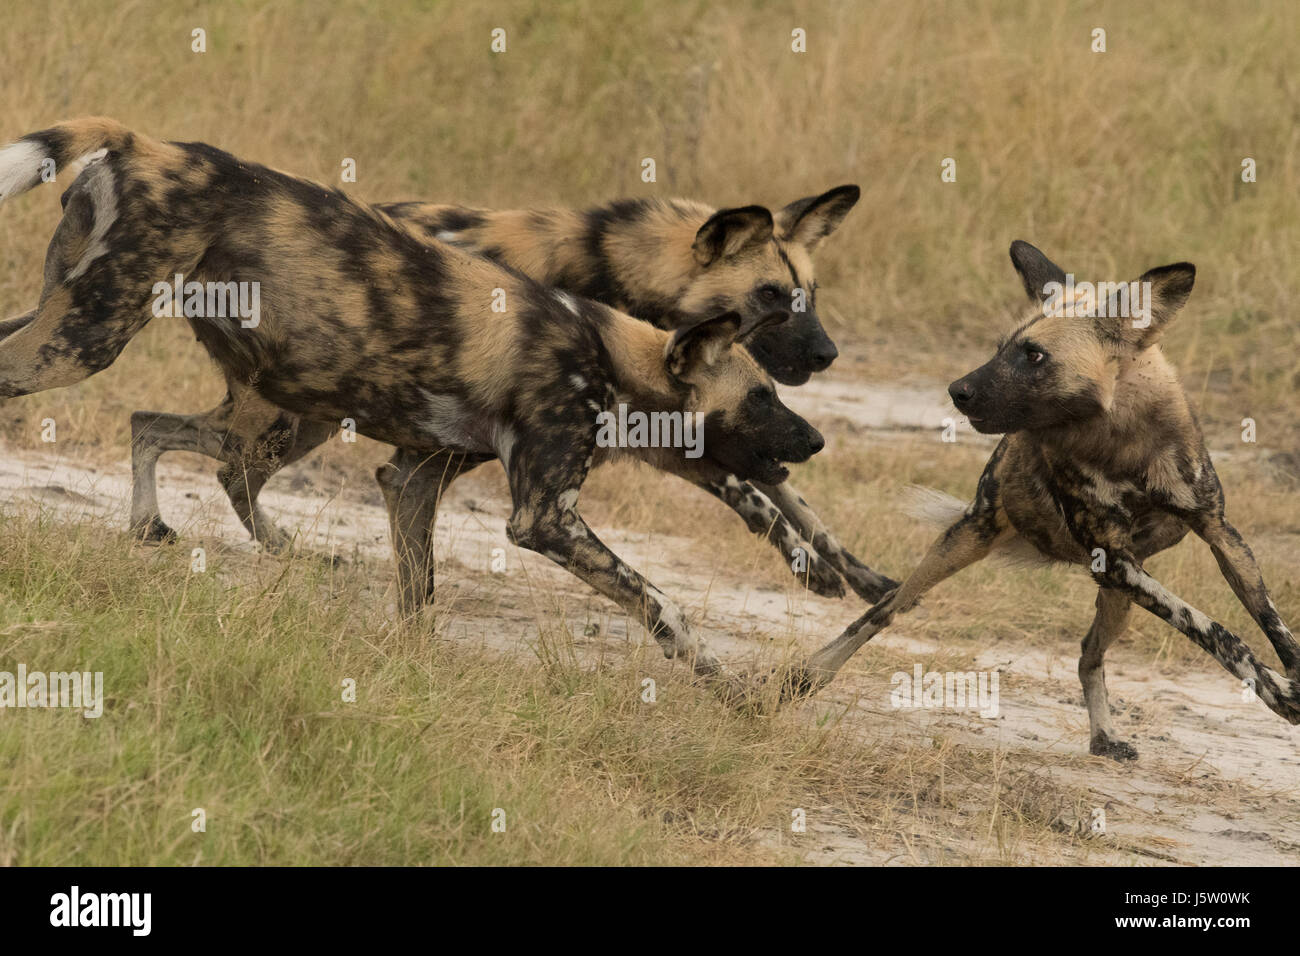 Three Cape Hunting dogs (African Wild Dogs) tussling with each other for dominance seen in Chitabe in the Okavango - Stock Image